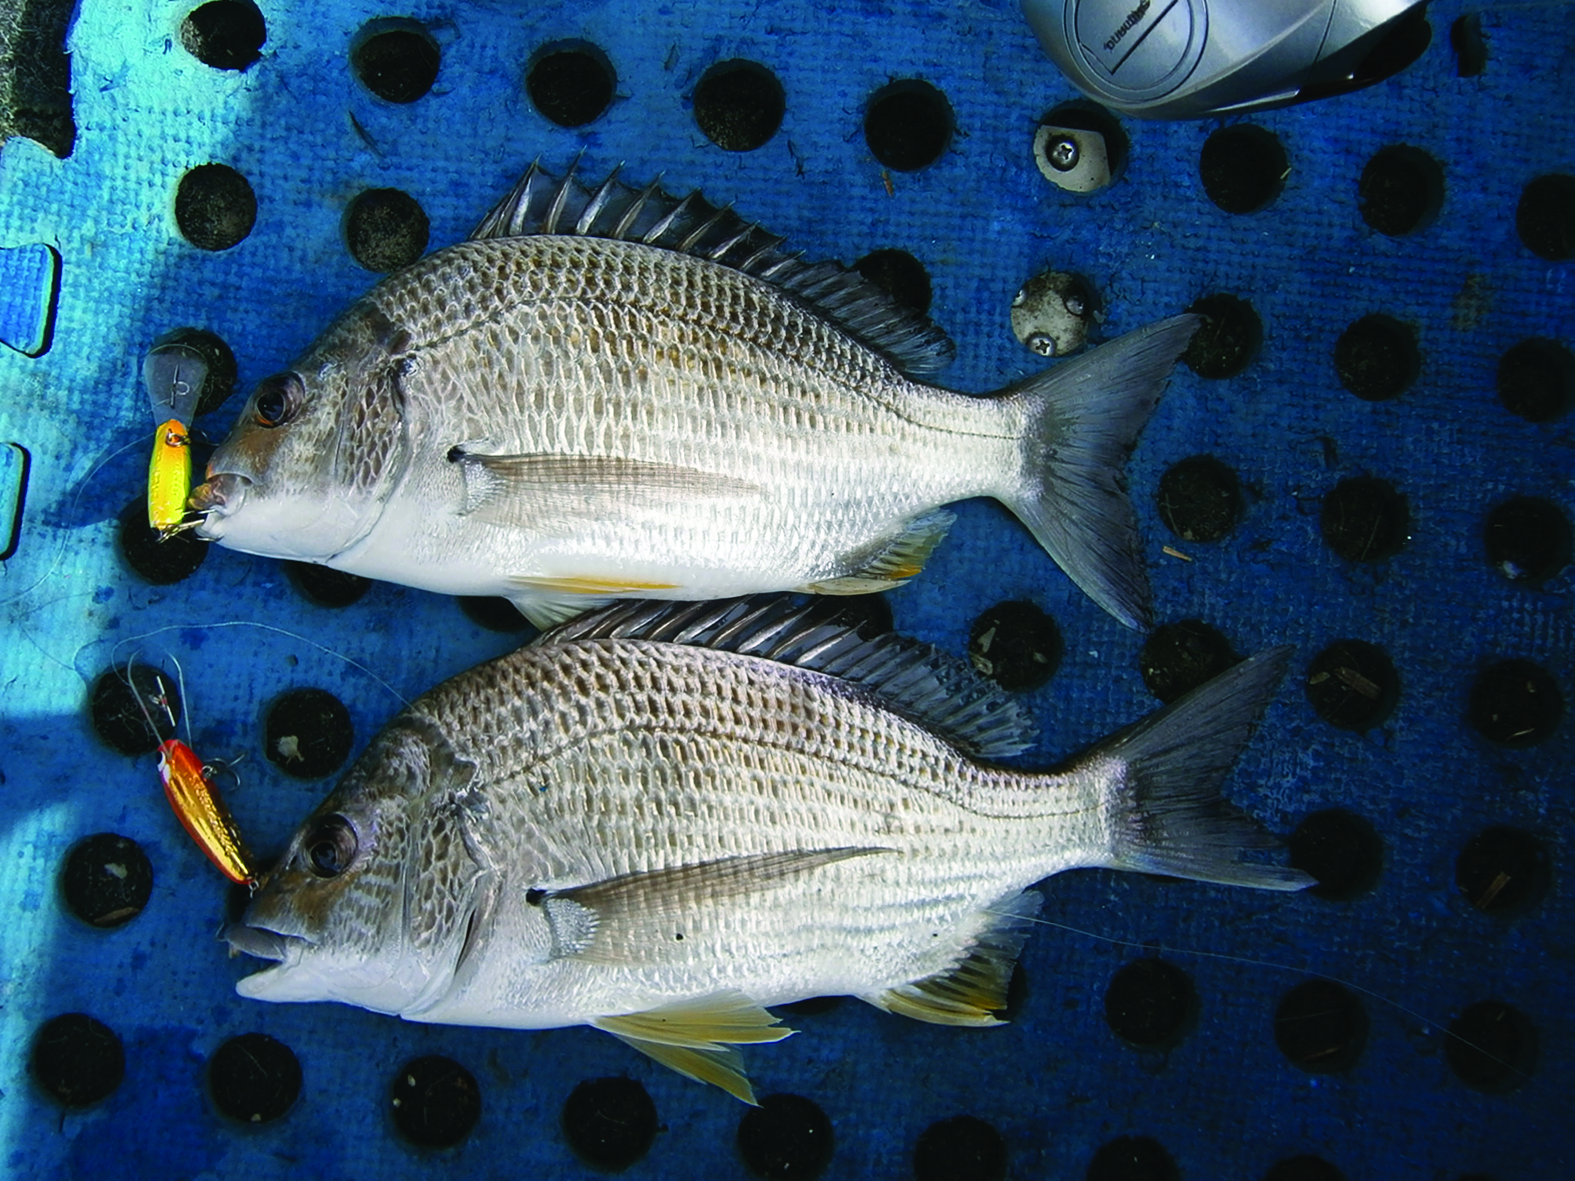 You can't do much better than getting a double hook-up of solid bream on lures.